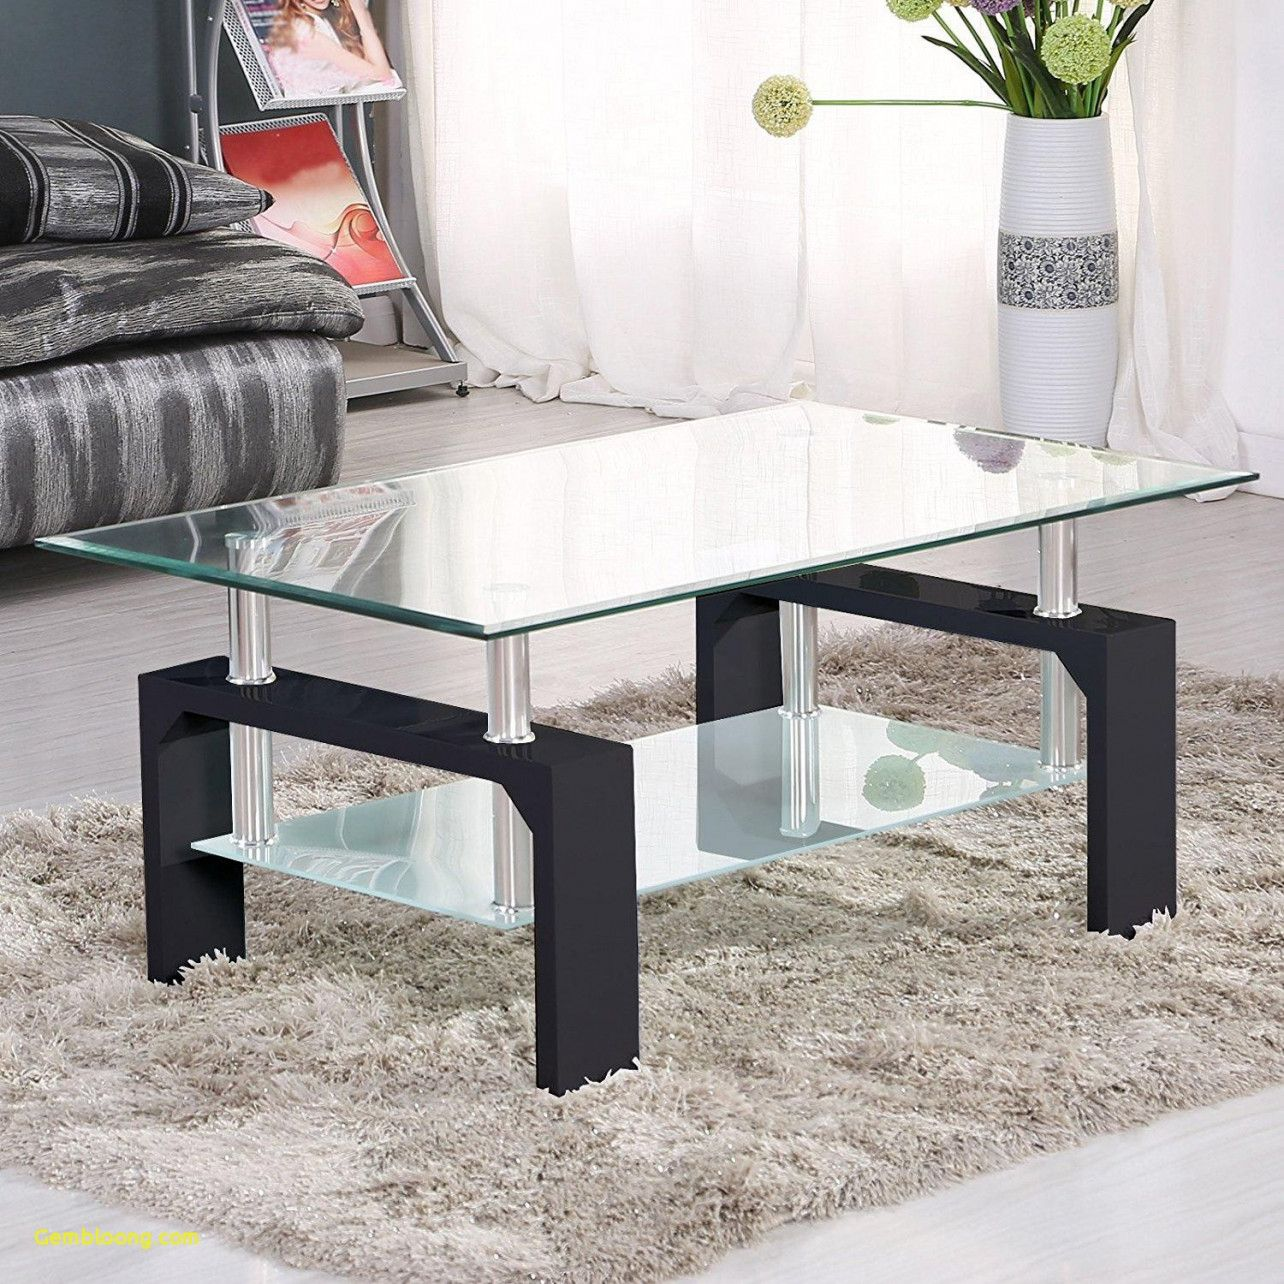 50 New Glass Lift Top Coffee Table 2020 Wood Furniture Living